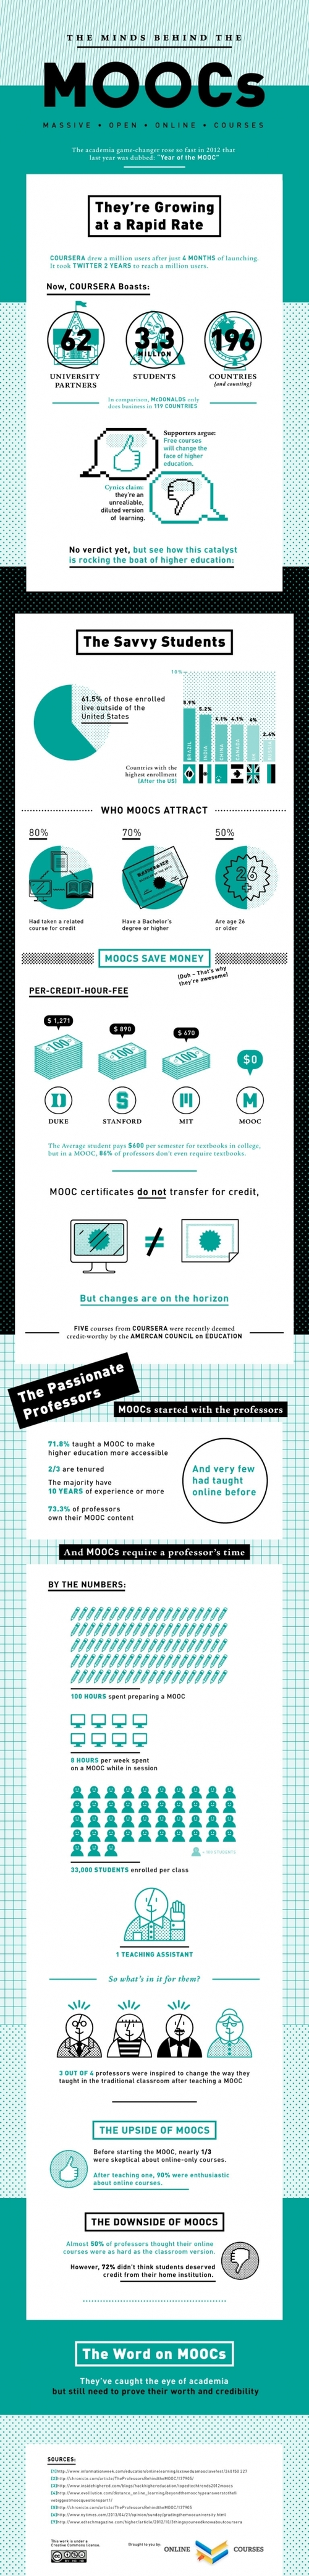 MOOC is a New Way of Higher Education.